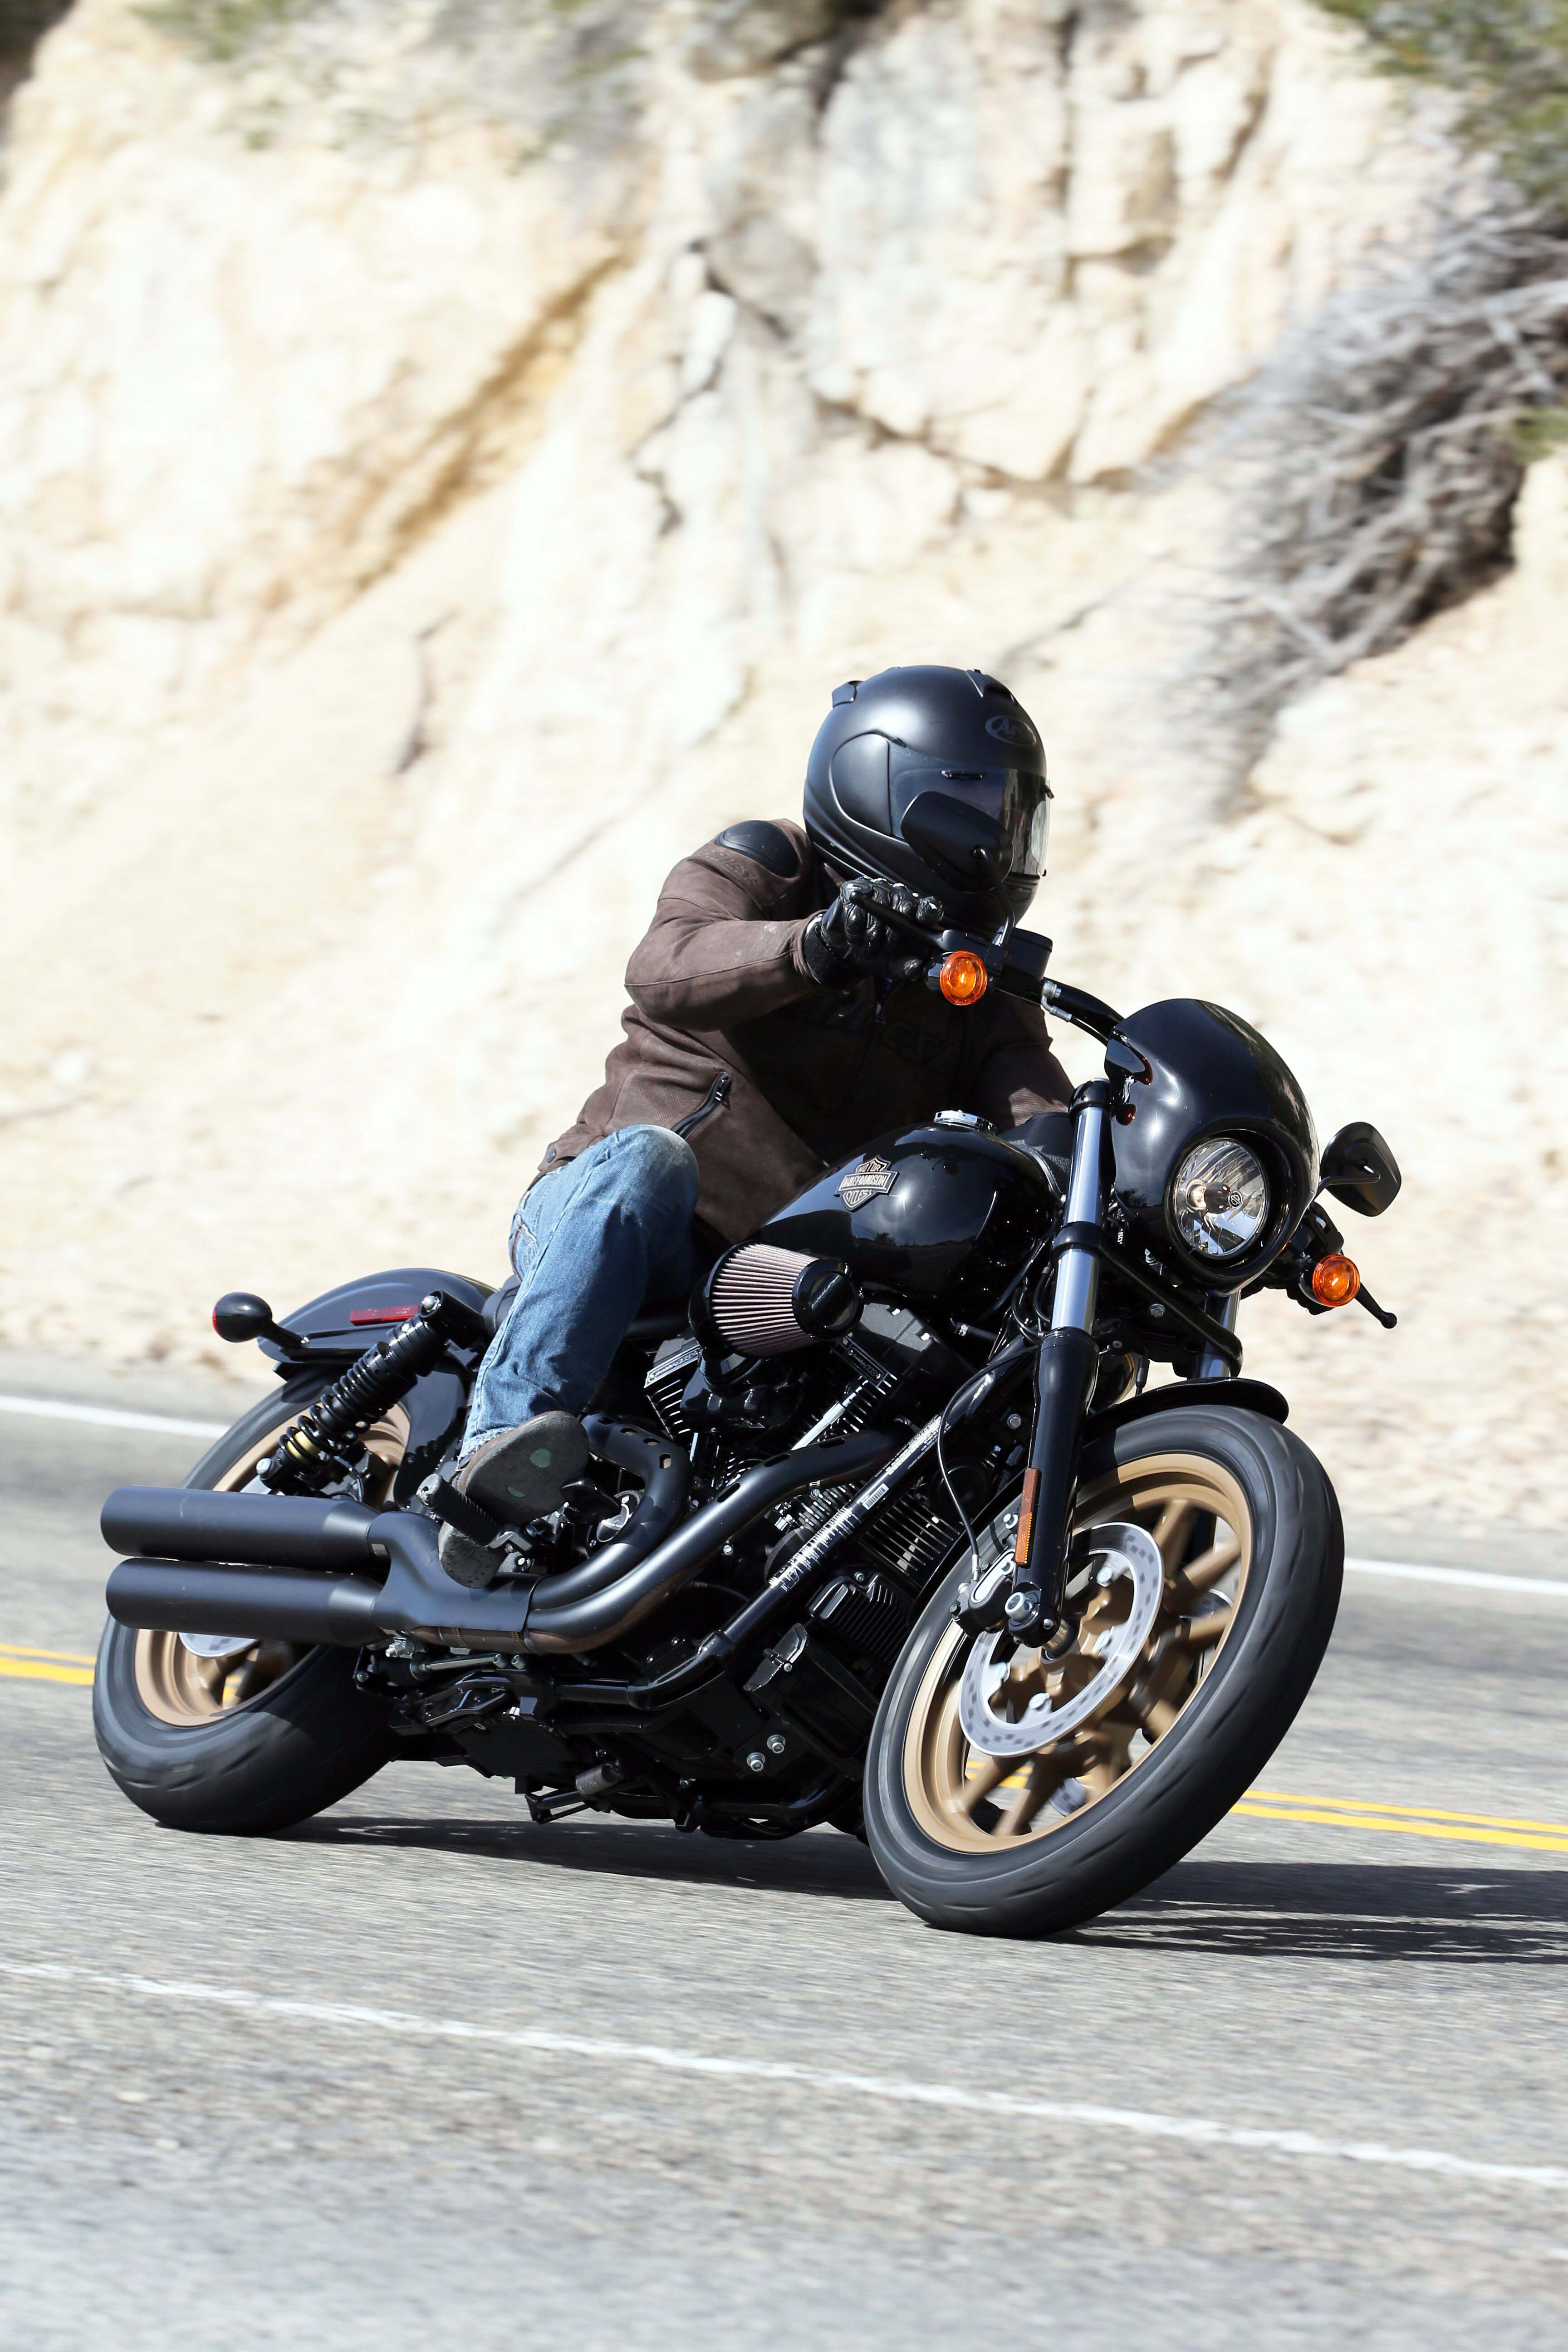 2016 Harley Davidson Low Rider S First Ride Review